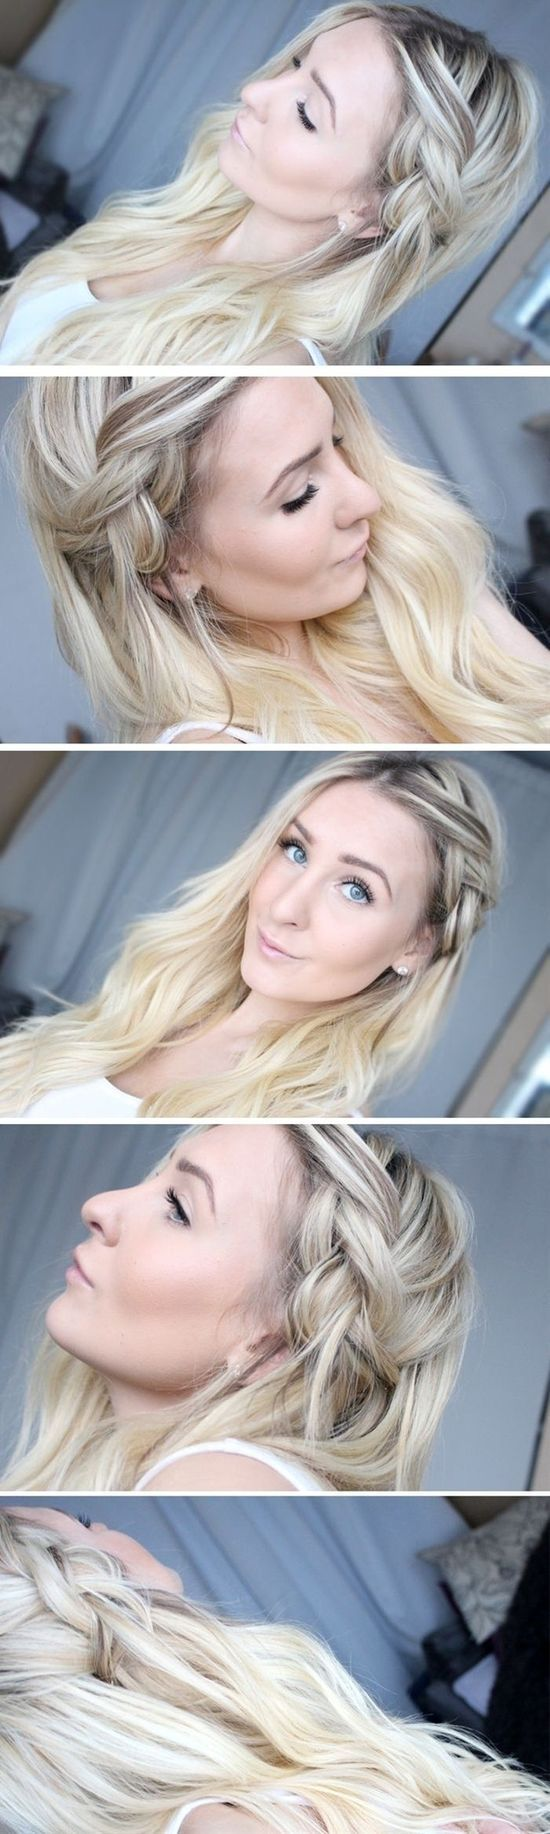 This half-done braid will stay even better in unwashed hair. | http://hairstyles.hana.lemoncoin.org